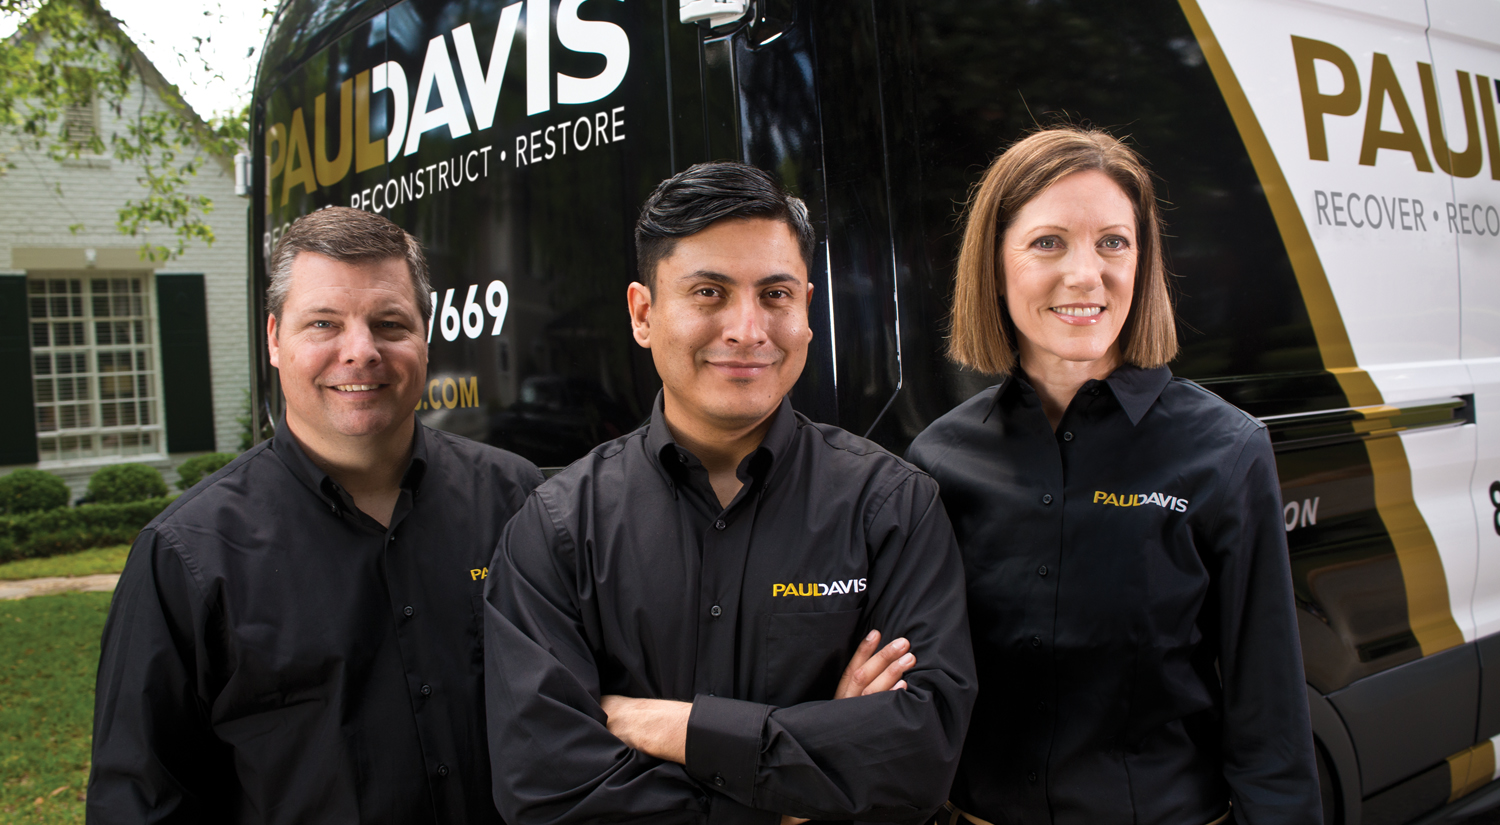 Paul Davis - image of the Paul Davis team